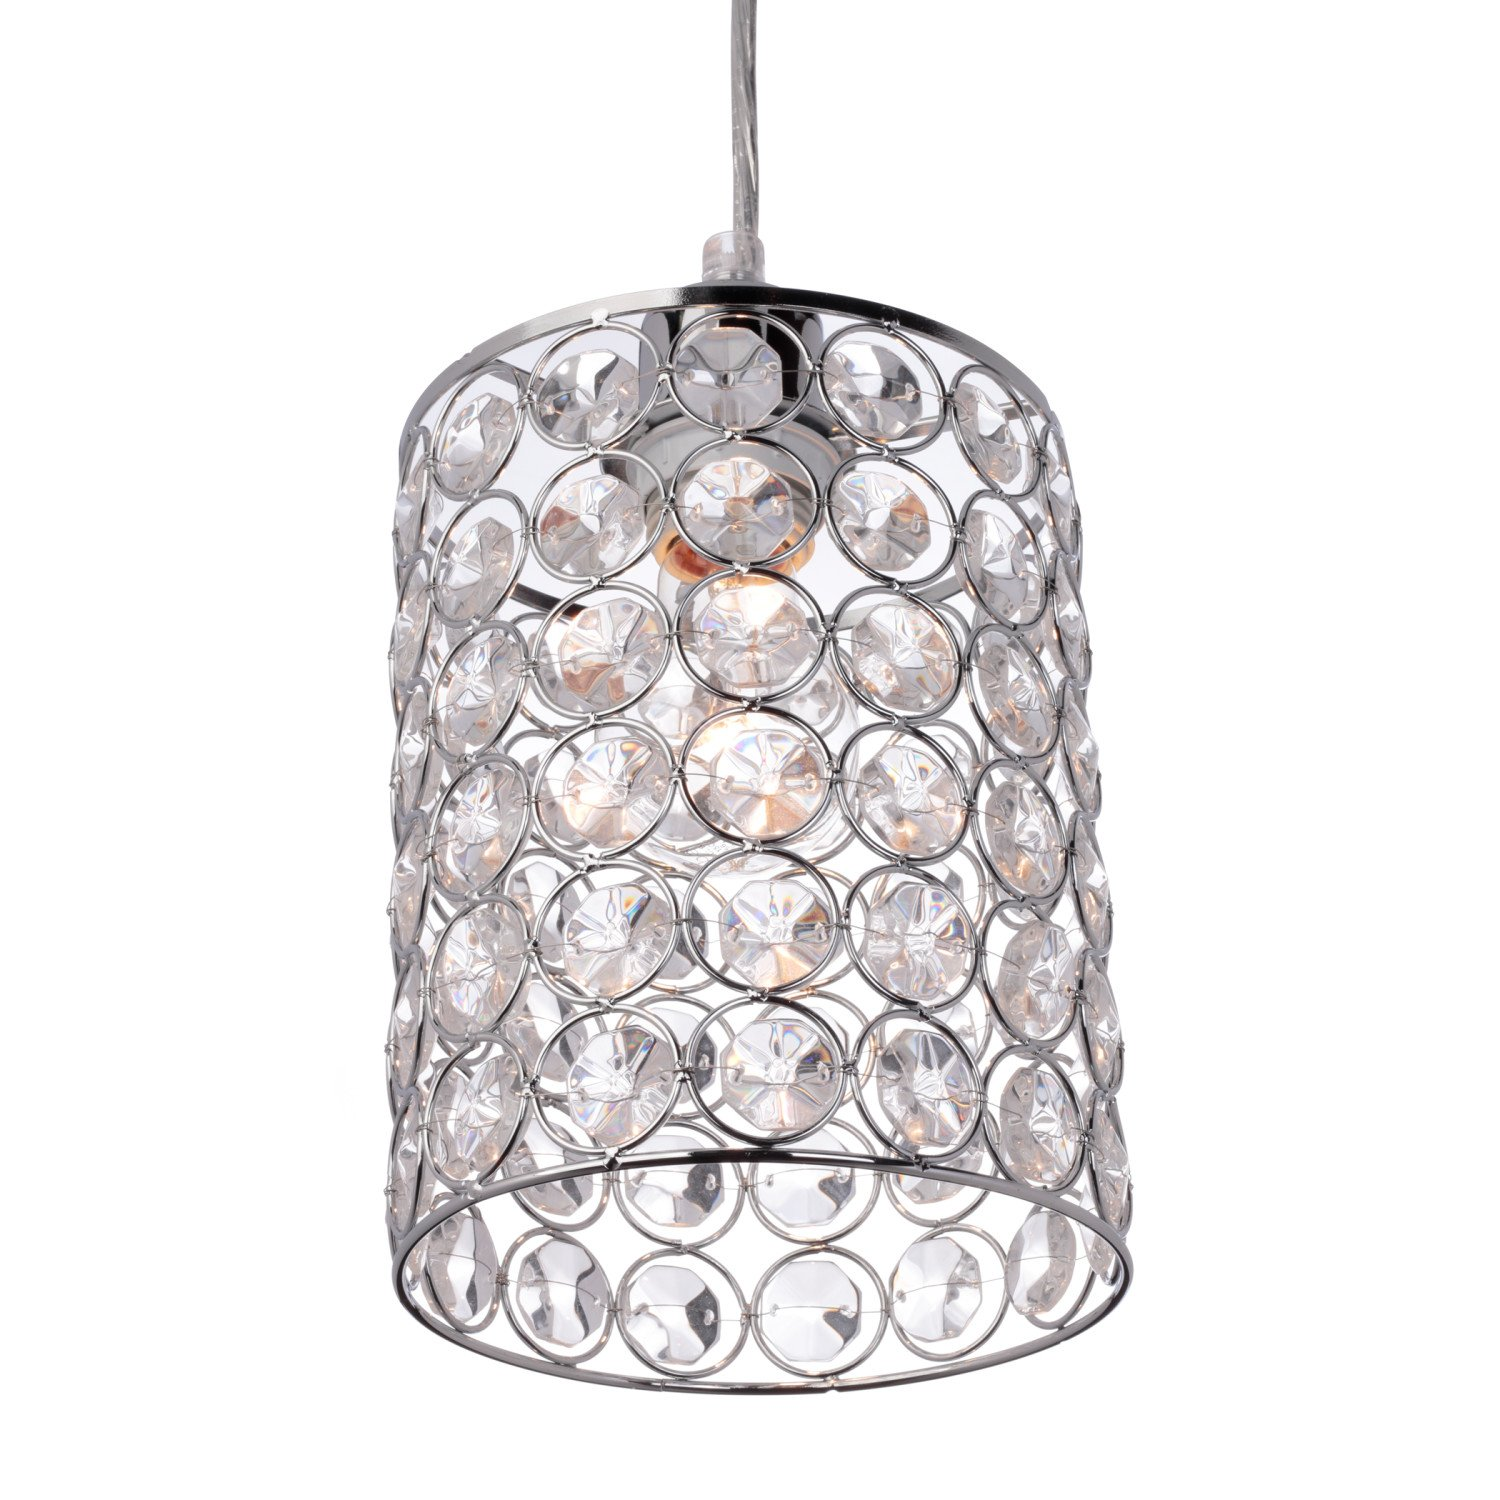 Globe Electric 65012 Trenton 1-Light Mini Pendant, Caged Crystal Shade, Polished Chrome Finish